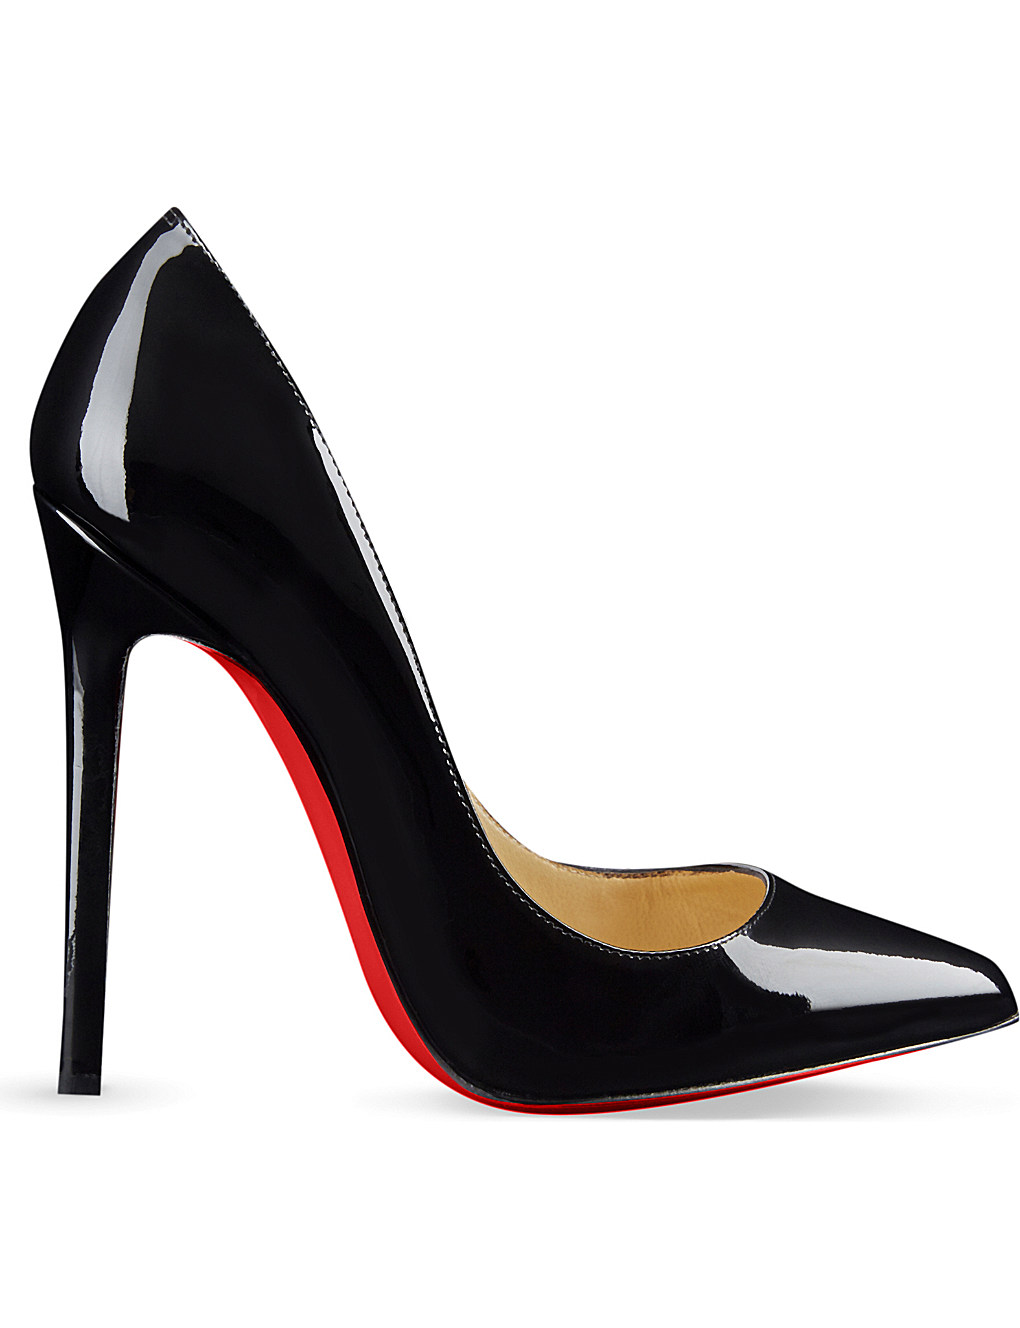 CHRISTIAN LOUBOUTIN Pigalle 120, £525.00